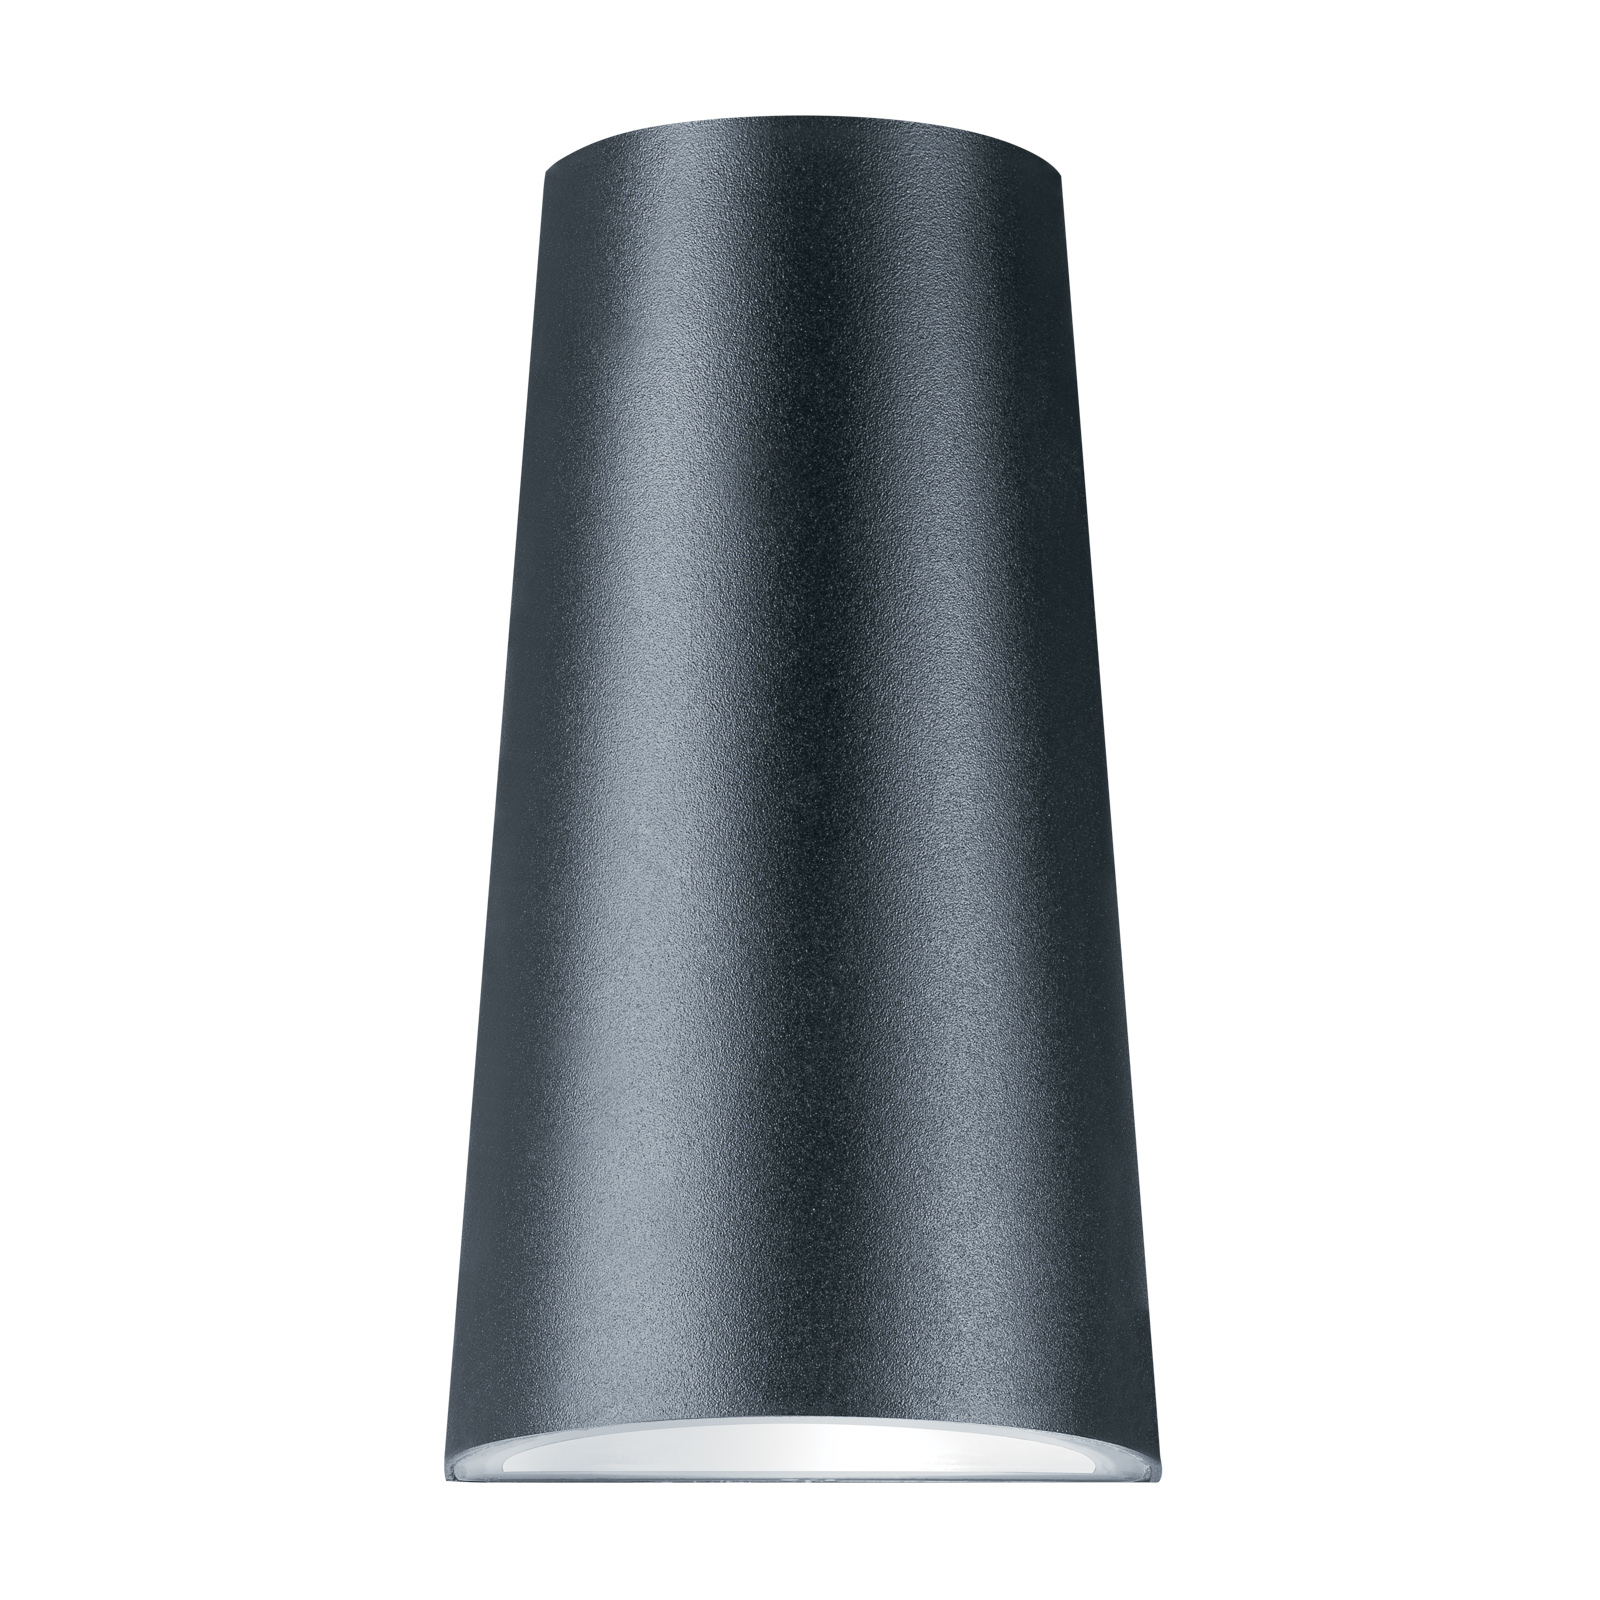 THORNeco Holly Cone Round Up/Down LED-Wandleuchte